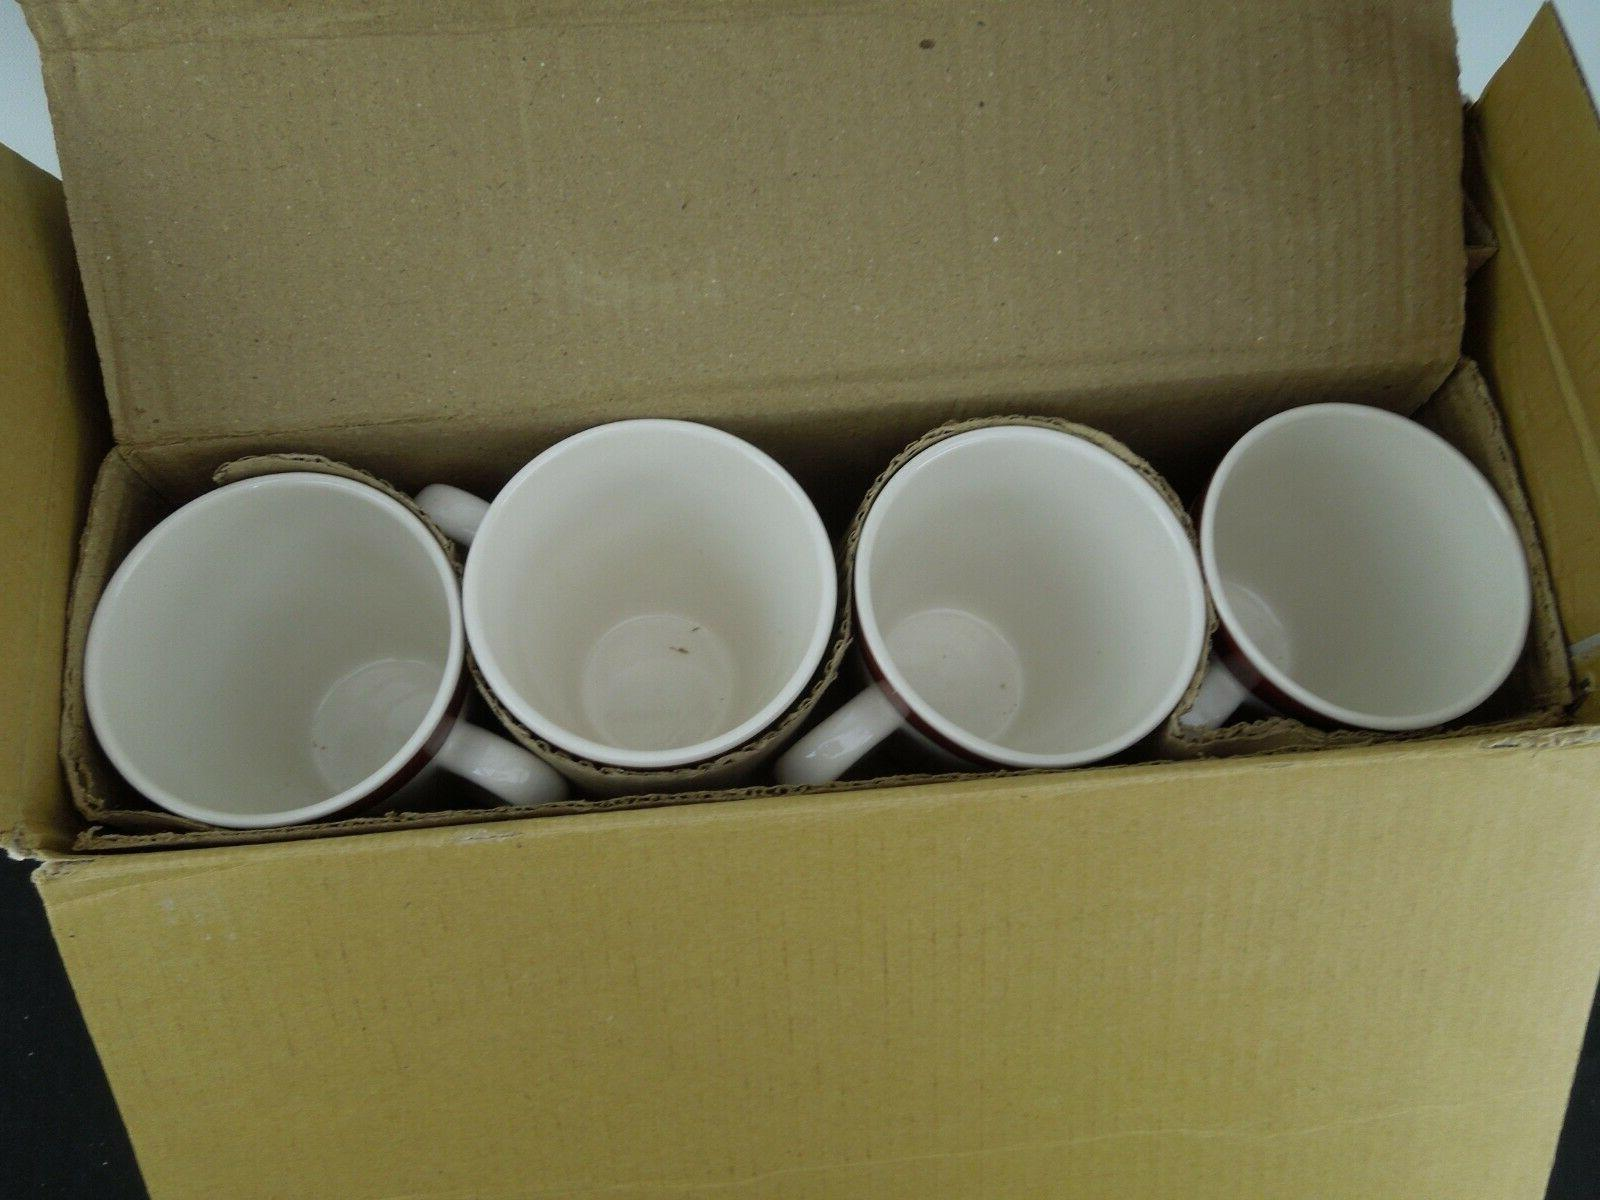 Holiday Home Christmas Holiday Home Dinnerware Set Service for Four NEW